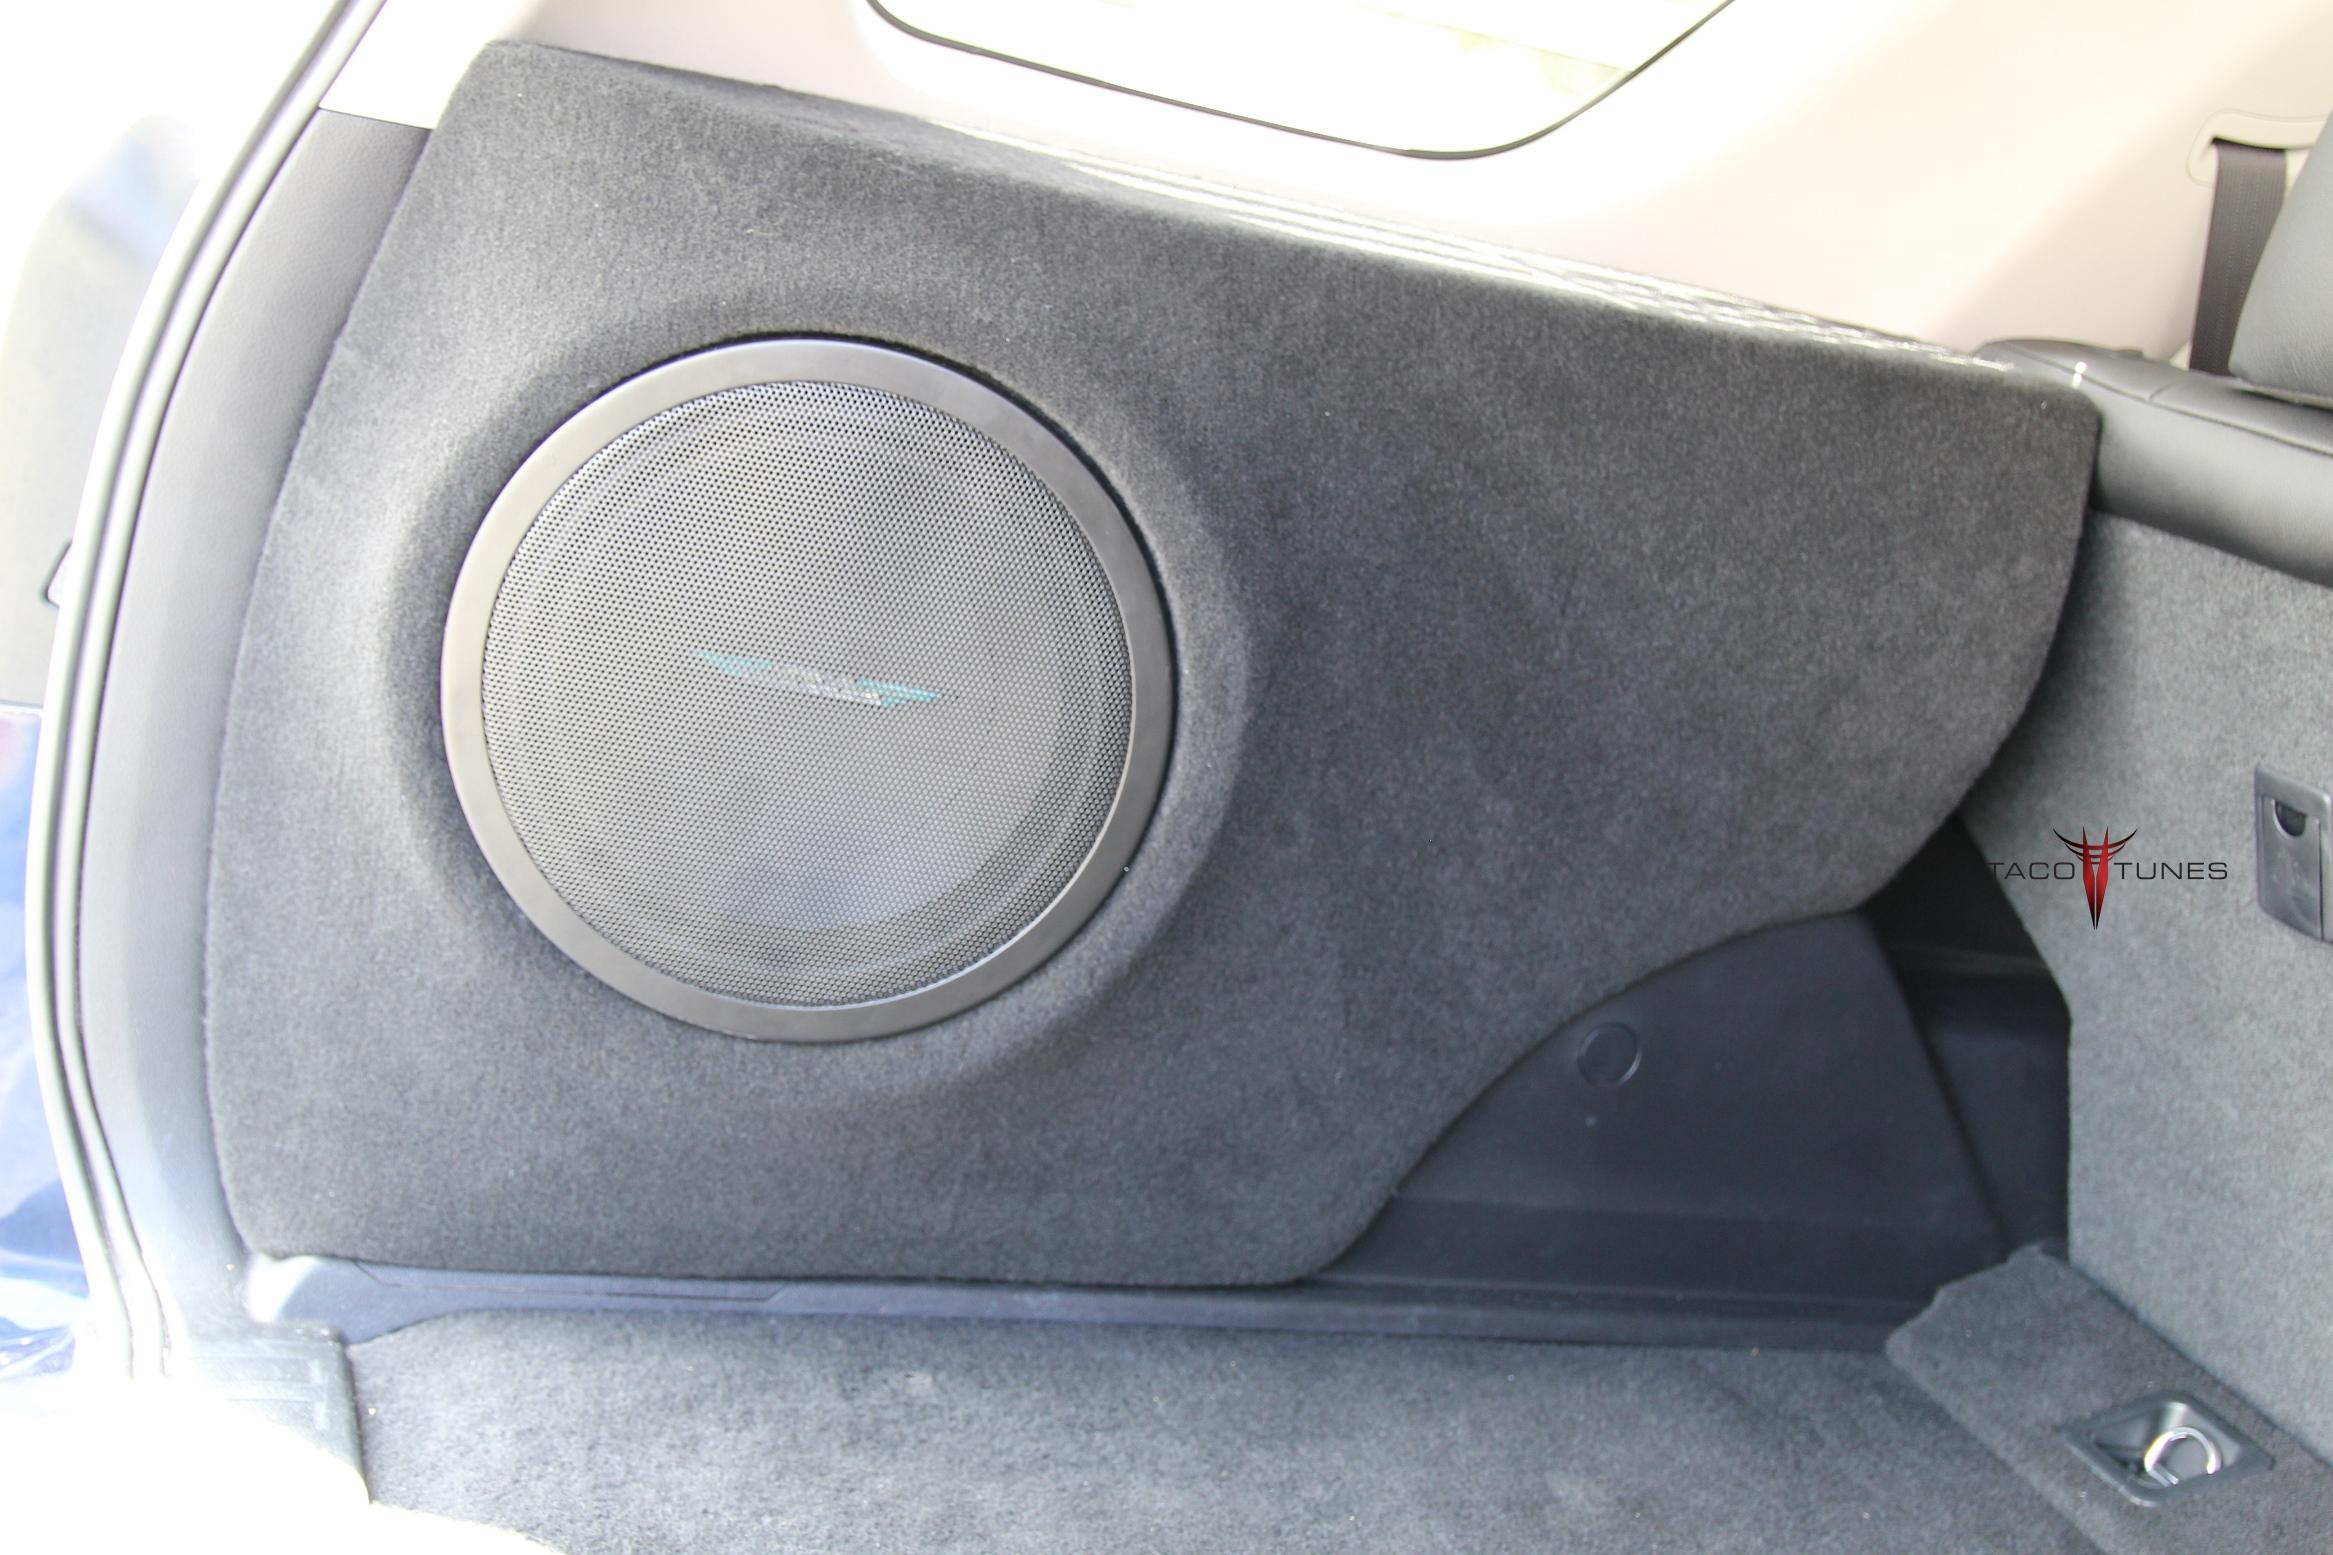 Toyota 4Runner Subwoofer Box fiberglass enclosure 12 inch